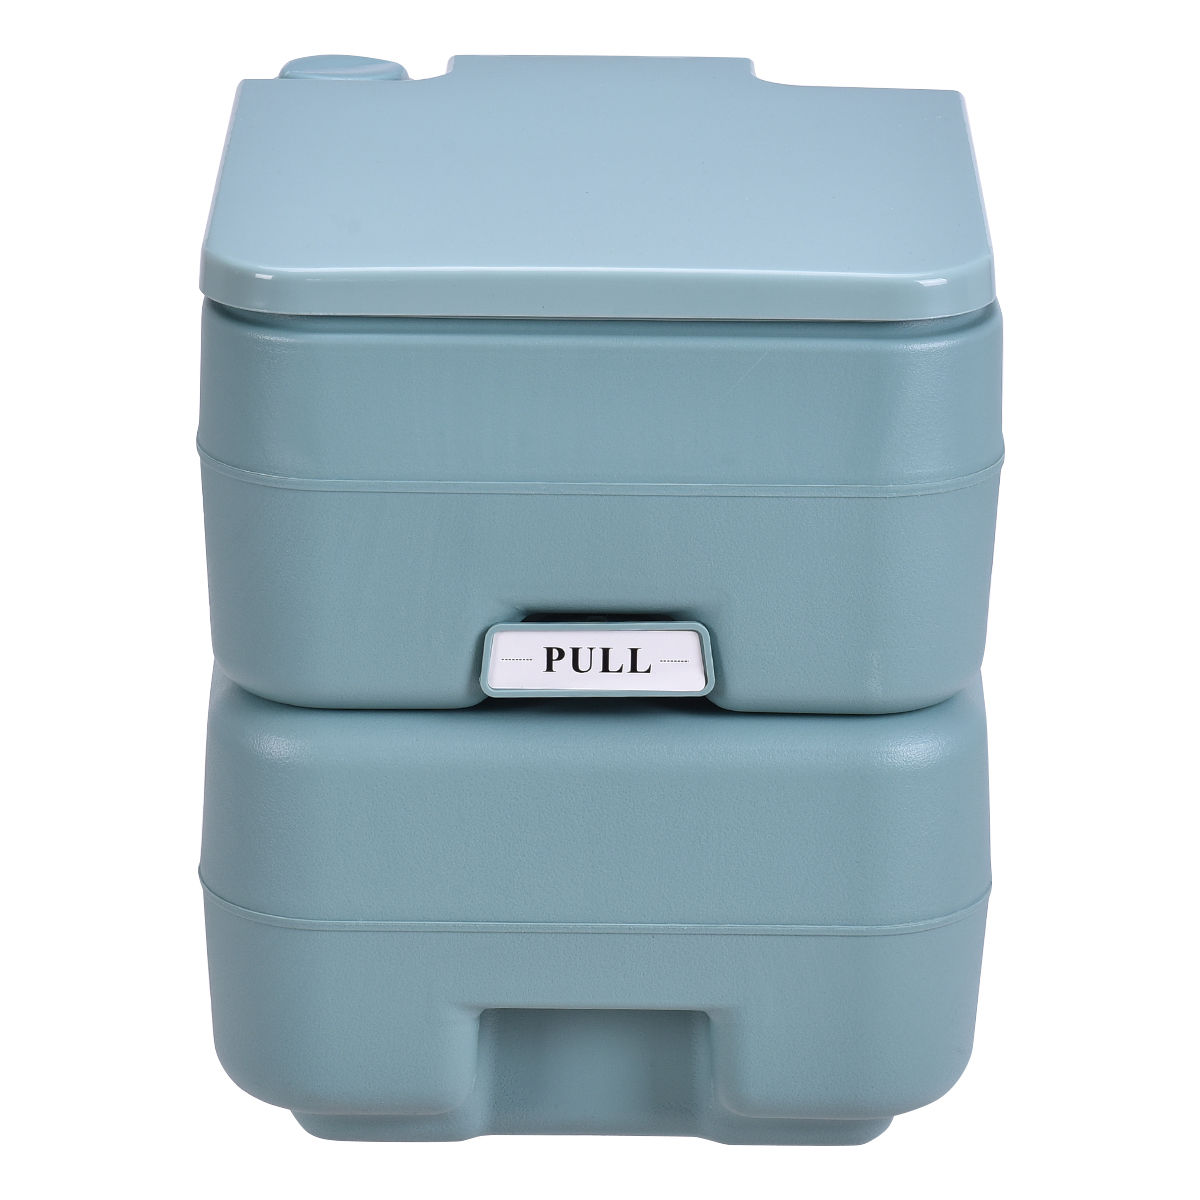 gymax outdoor camping hiking portable toilet flush potty